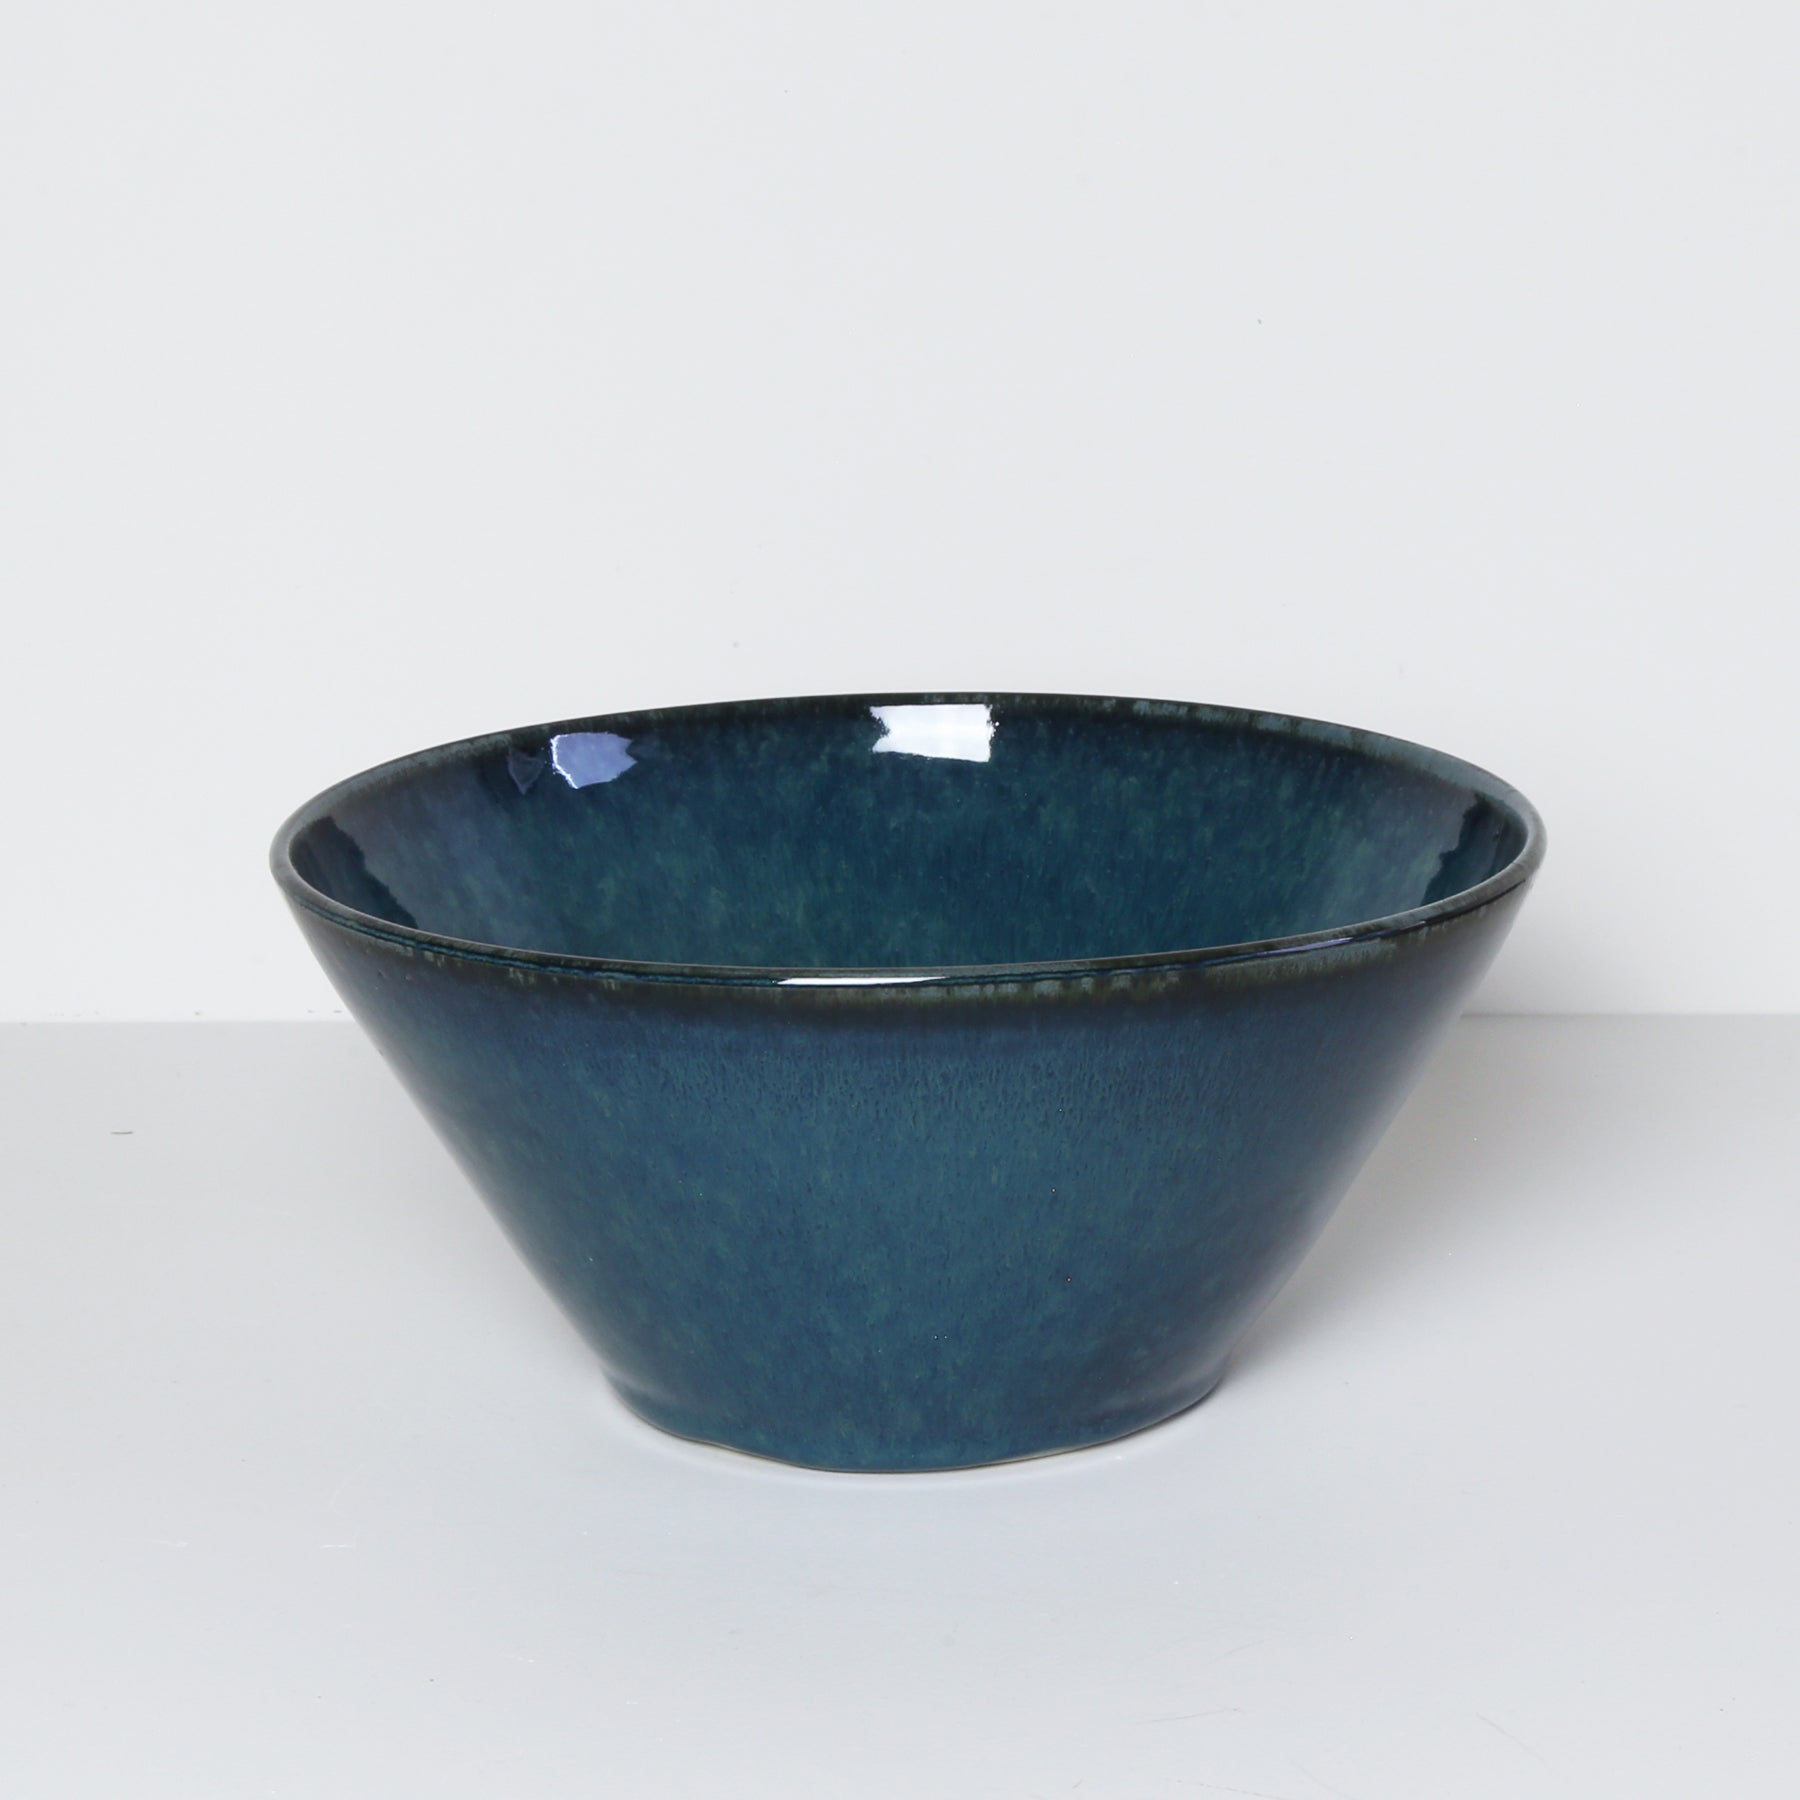 Medium Bowl, Petroleum